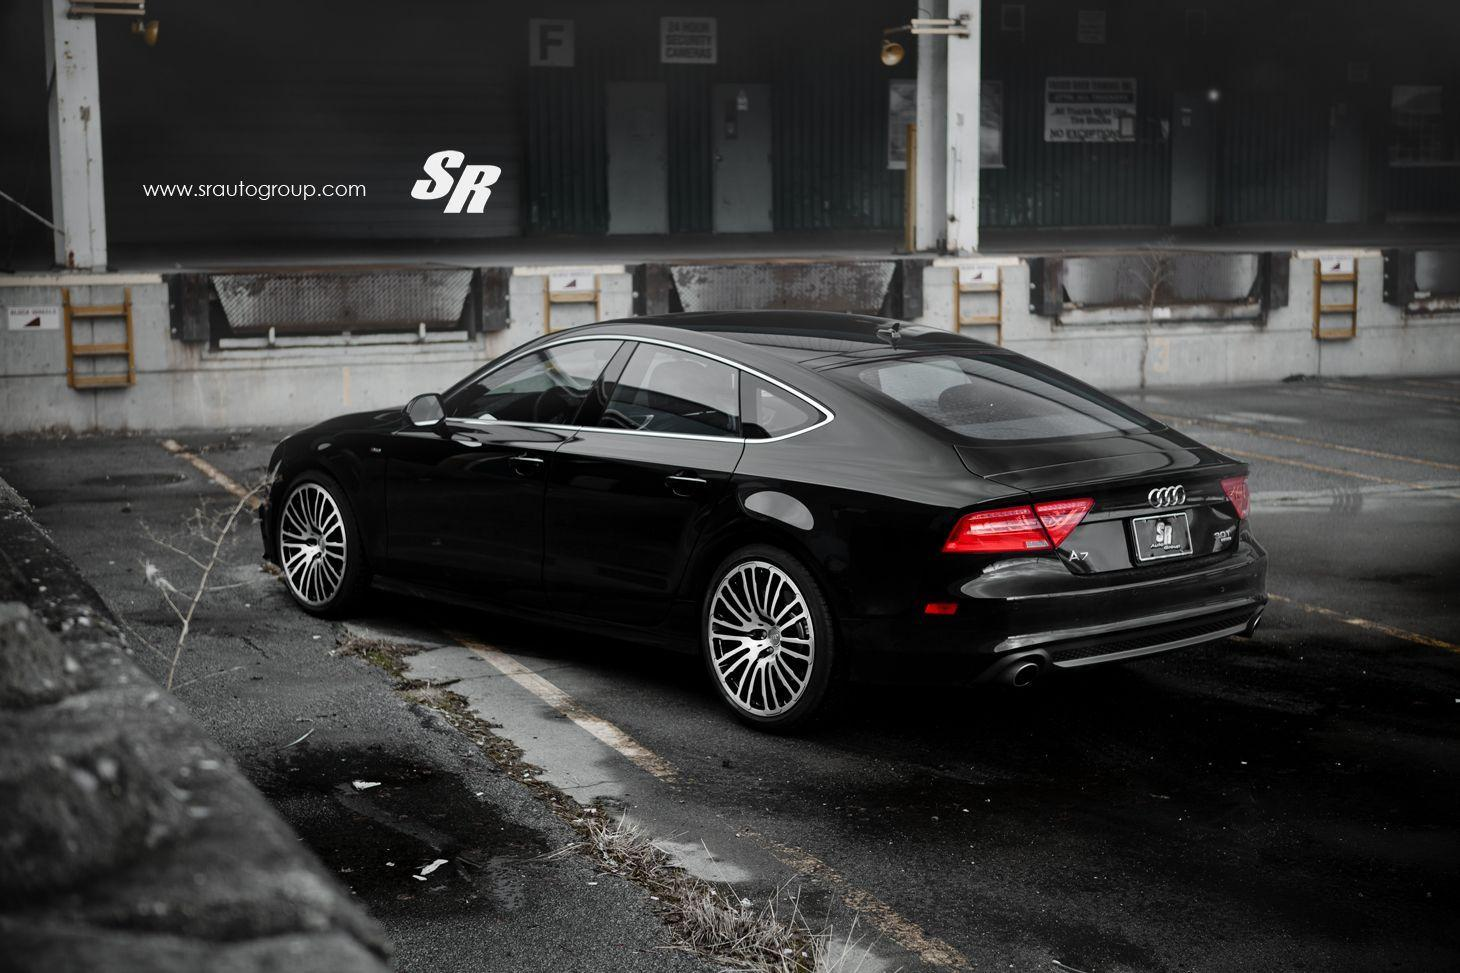 V.953 Audi A7 Wallpapers